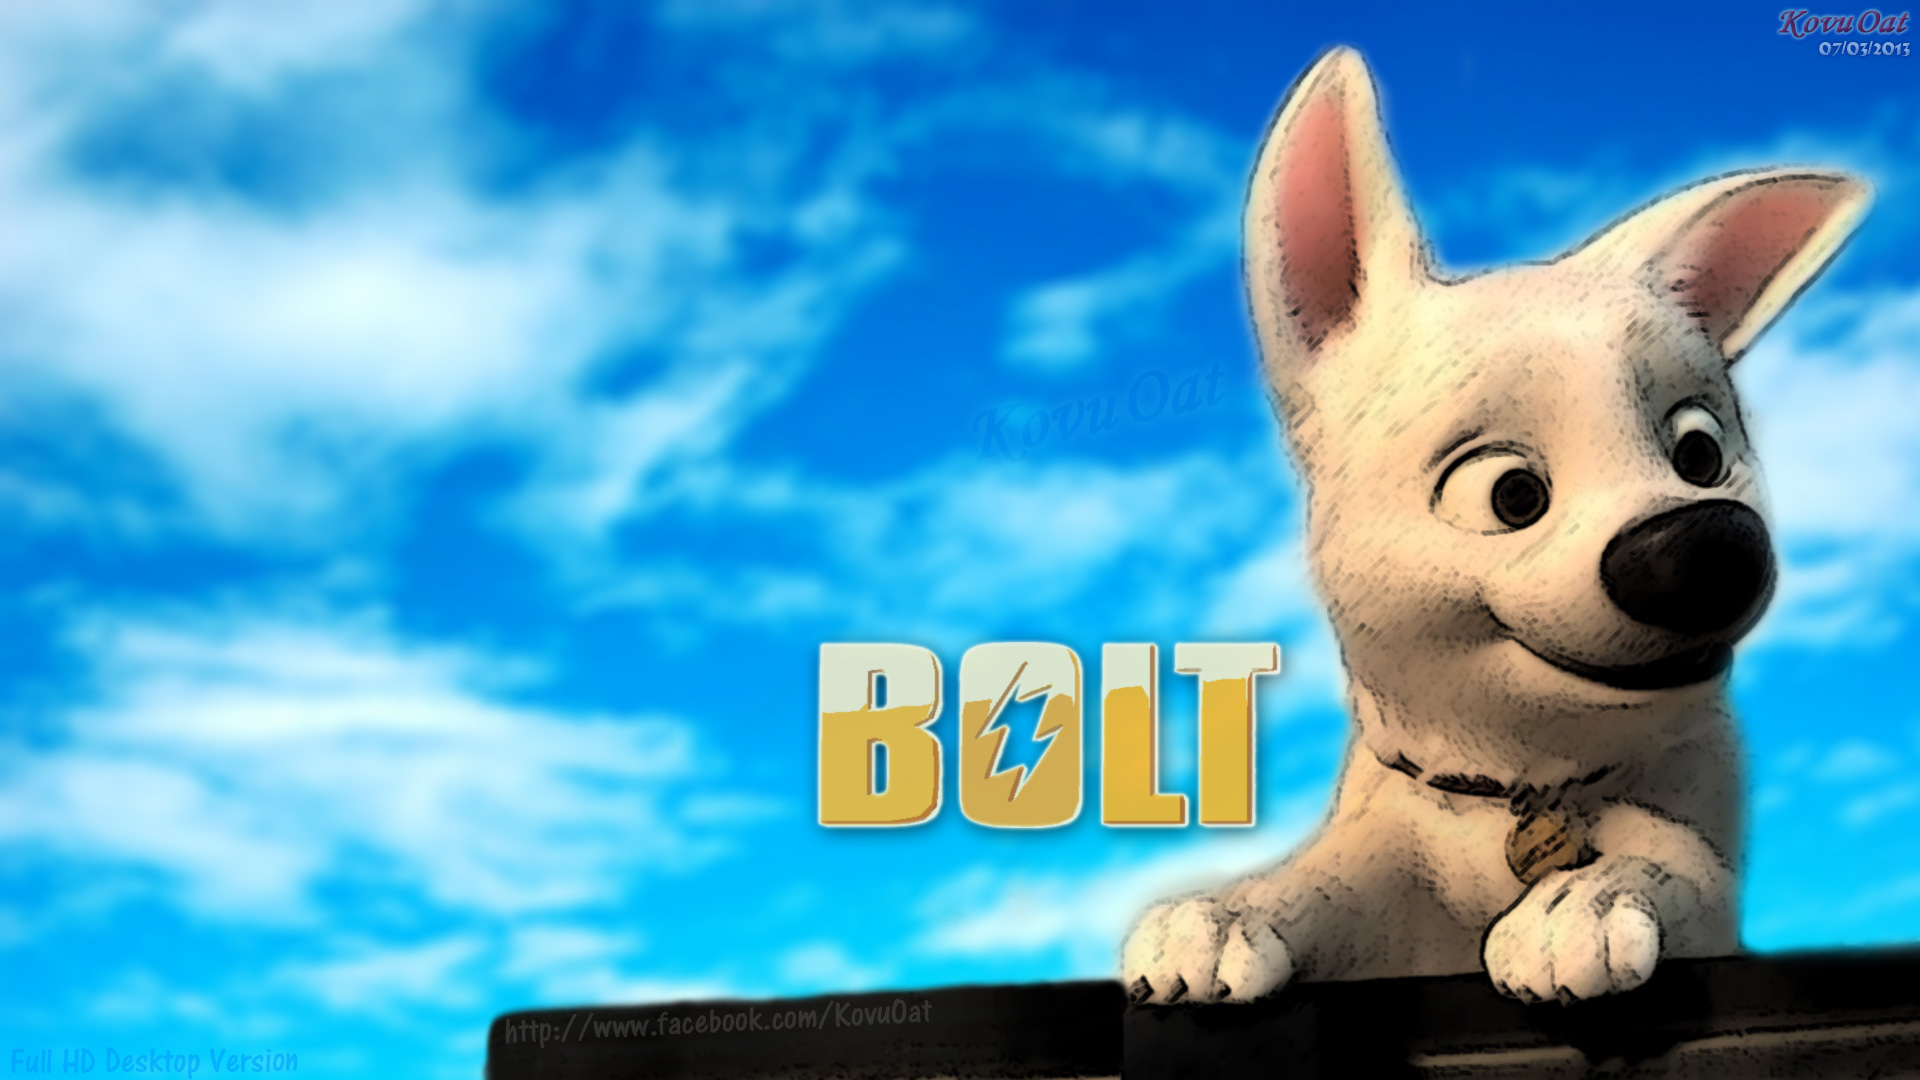 Disney Bolt Desktop Wallaper Hd Disneys Bolt Wallpaper